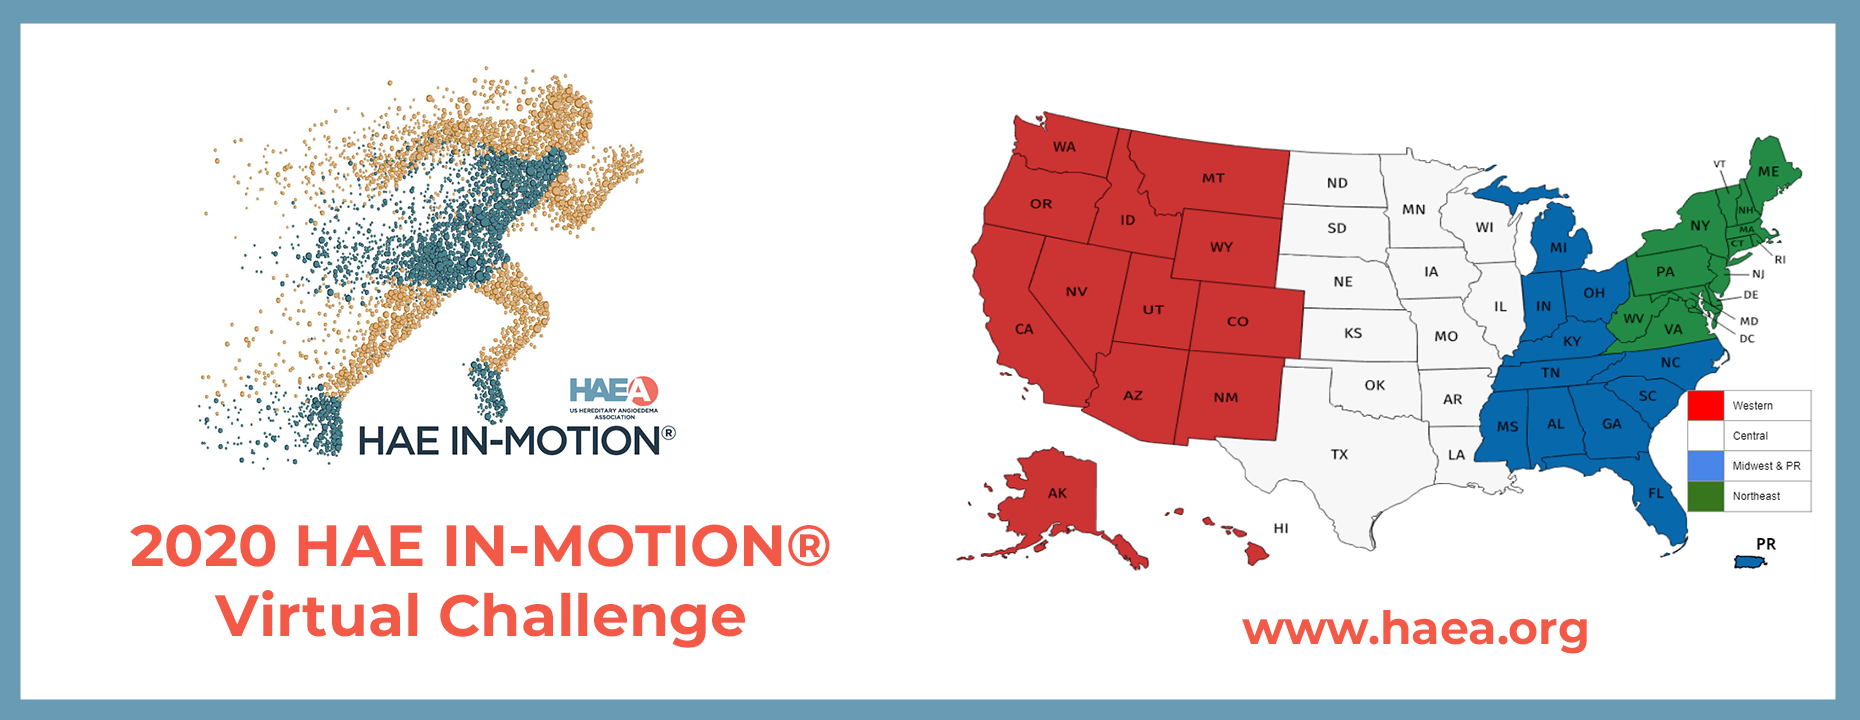 Registration is now open for the 2020 HAE IN-MOTION® Virtual Challenge.